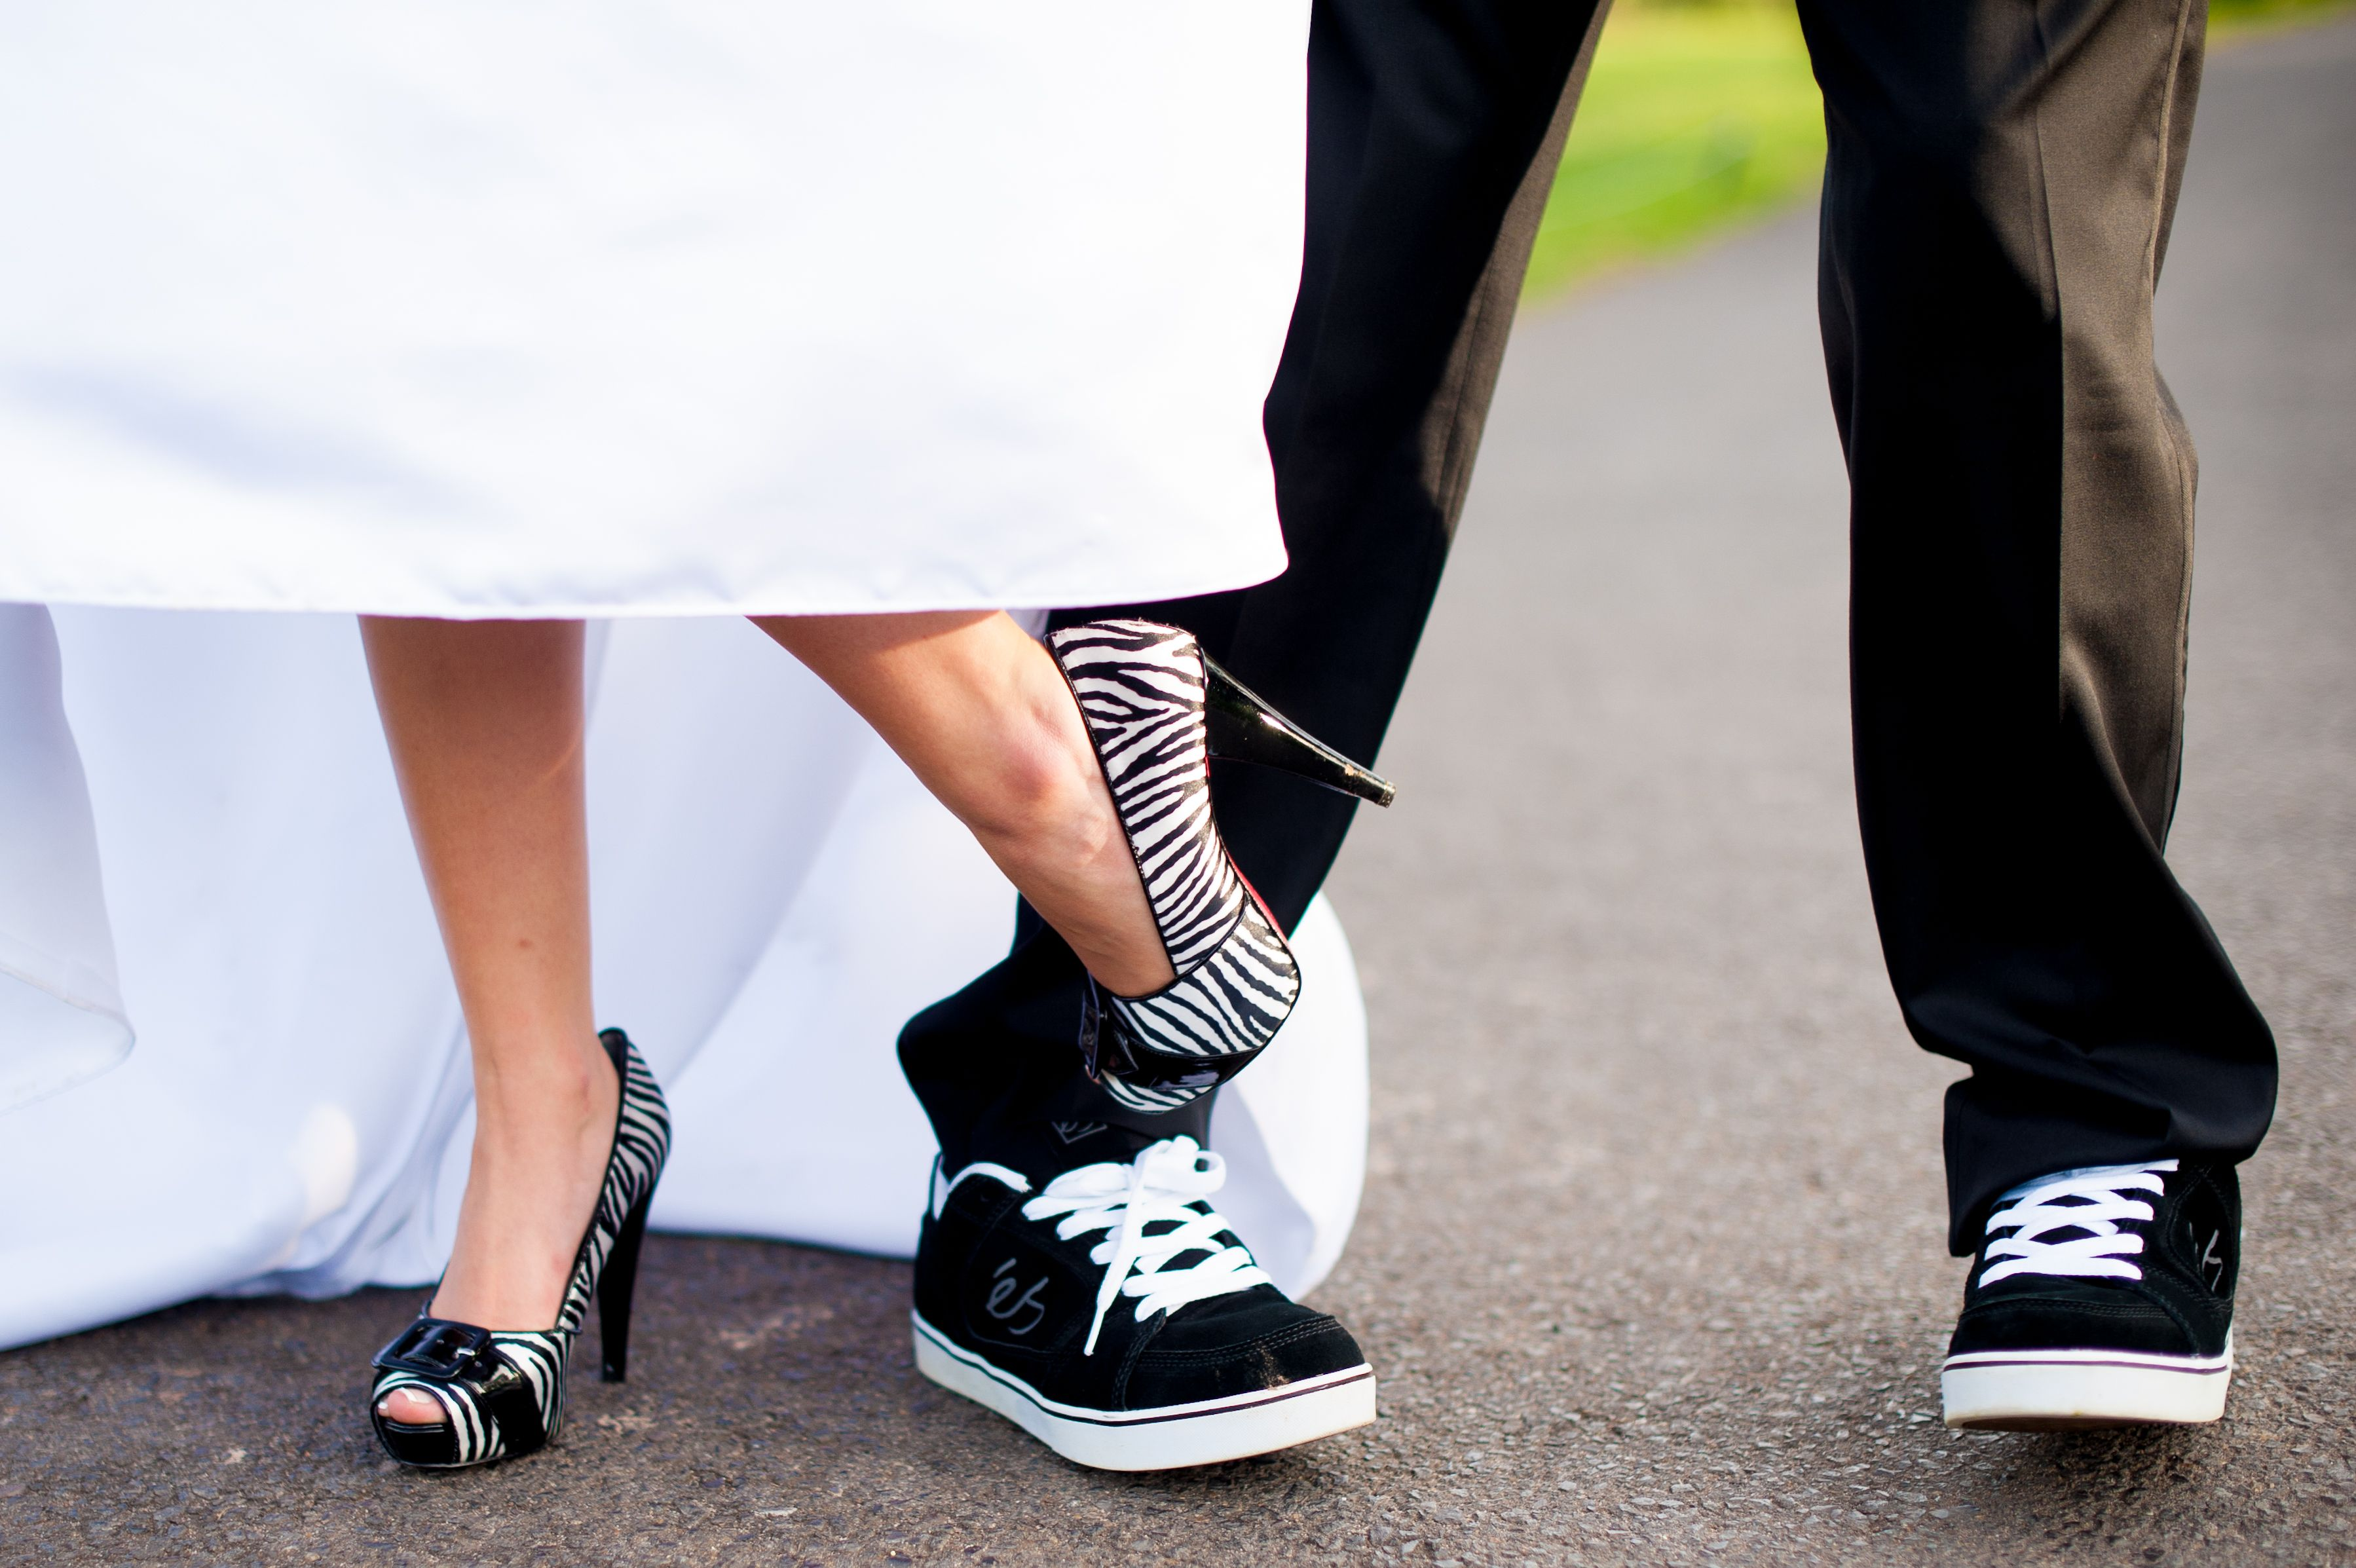 Bride and Groom Wedding Shoes @ Rebekahhoyt Photography